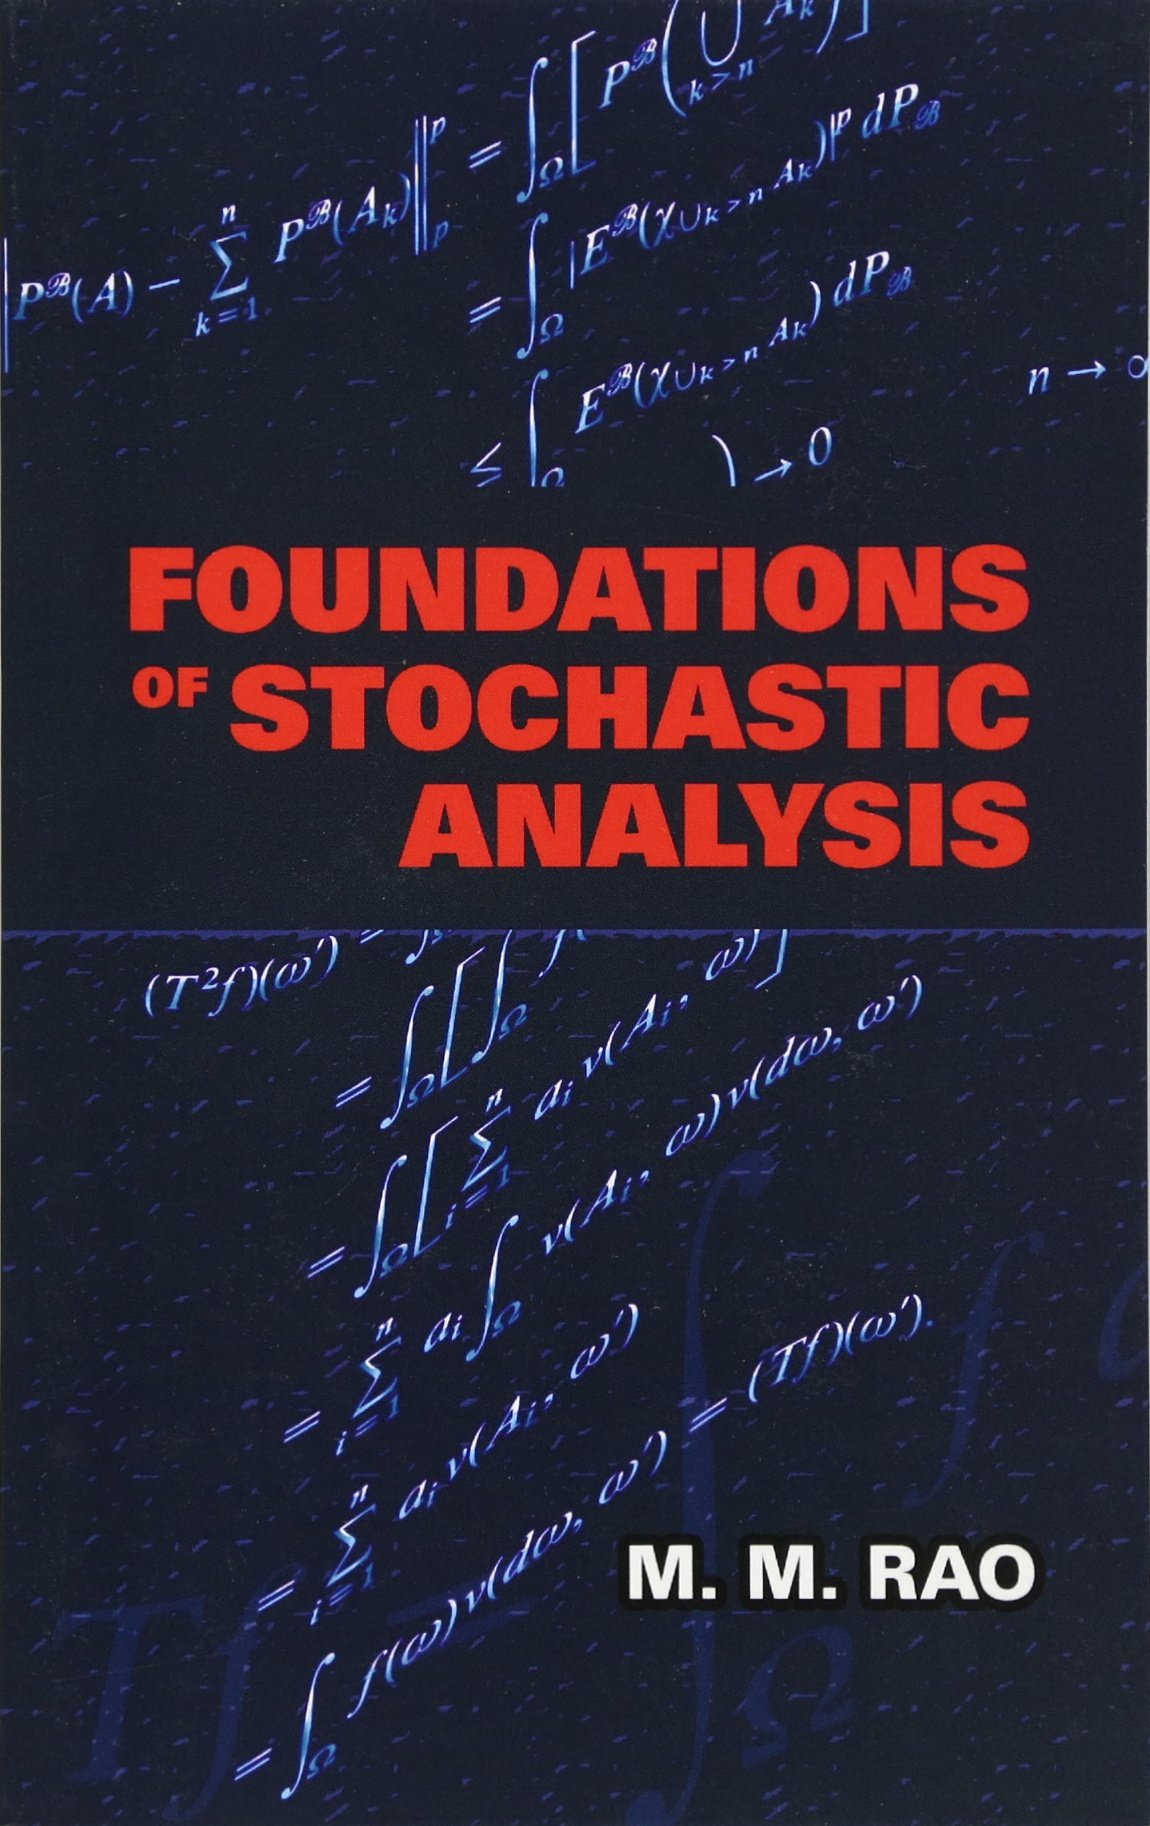 Foundations of Stochastic Analysis (Dover Books on Mathematics): M. M. Rao:  9780486481227: Amazon.com: Books